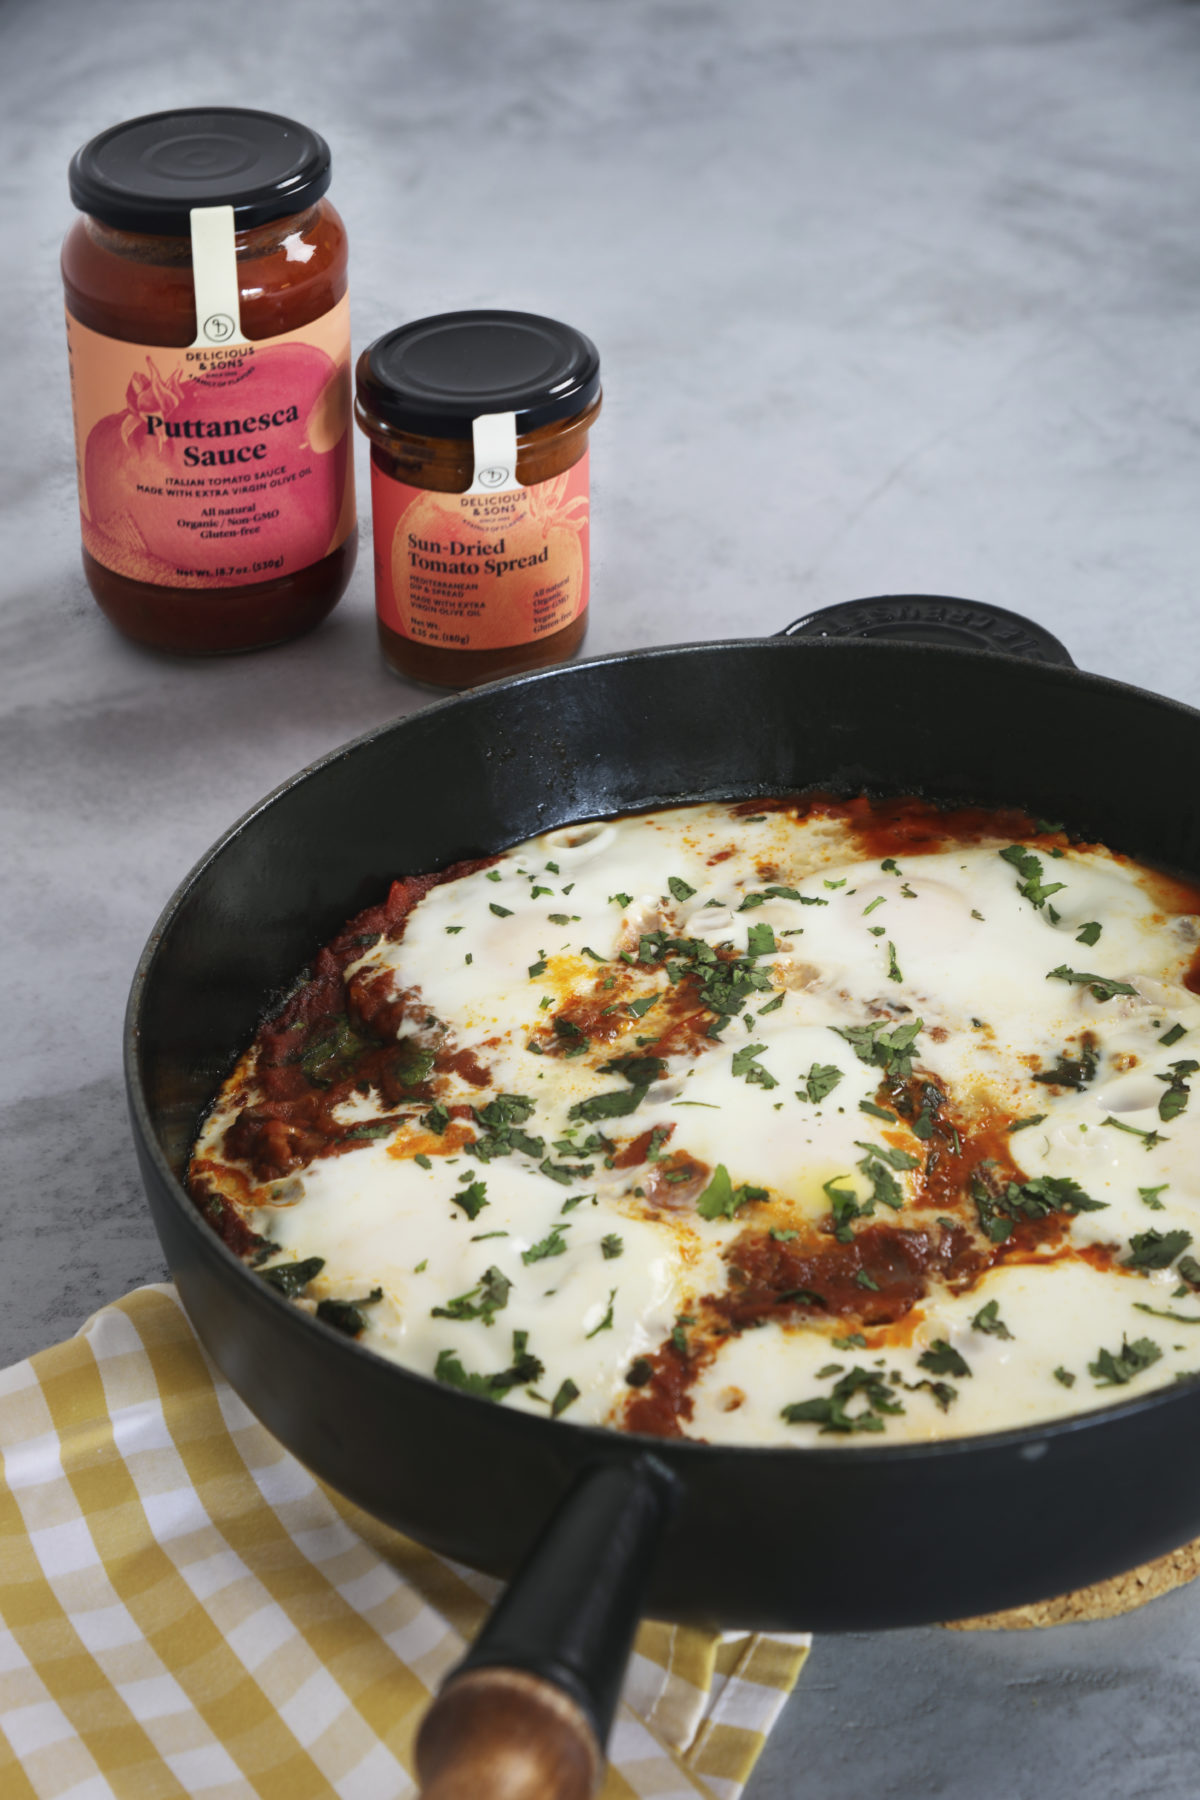 Shakshuka with Spinach and Puttanesca Sauce and Sun-Dried Tomato Spread by Alberto Rey — Delicious & Sons